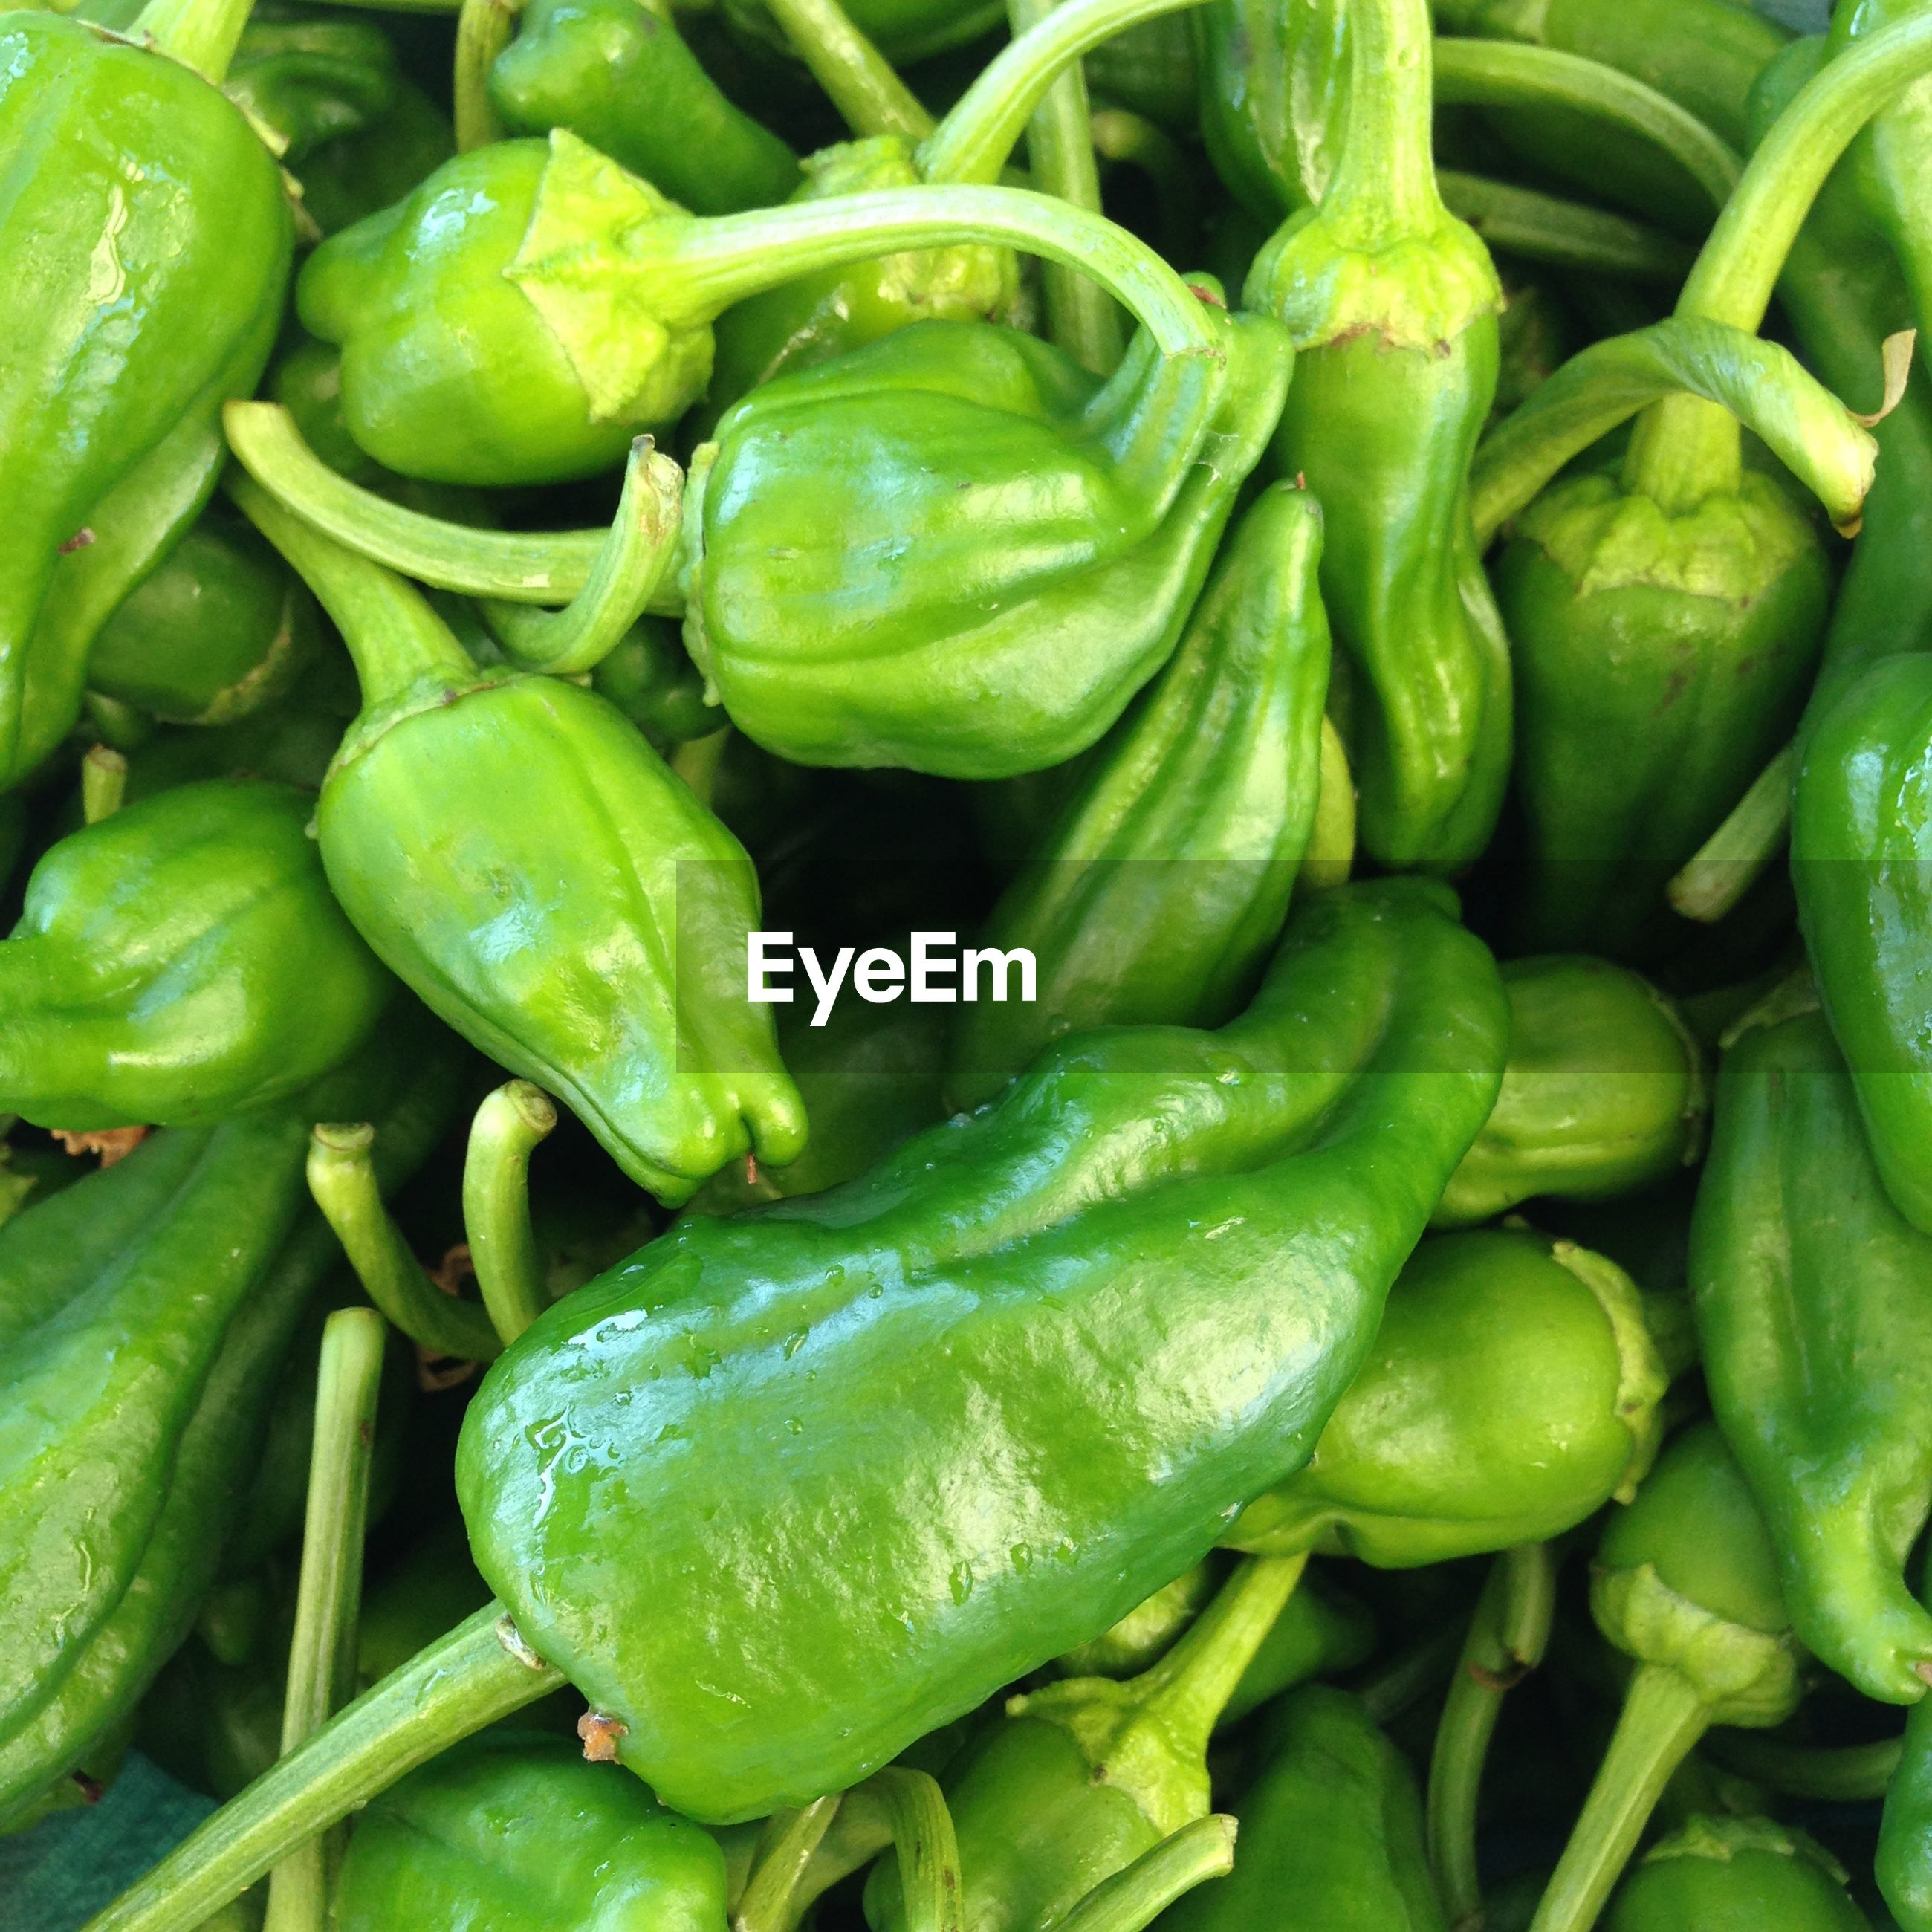 Detail shot of green chilies